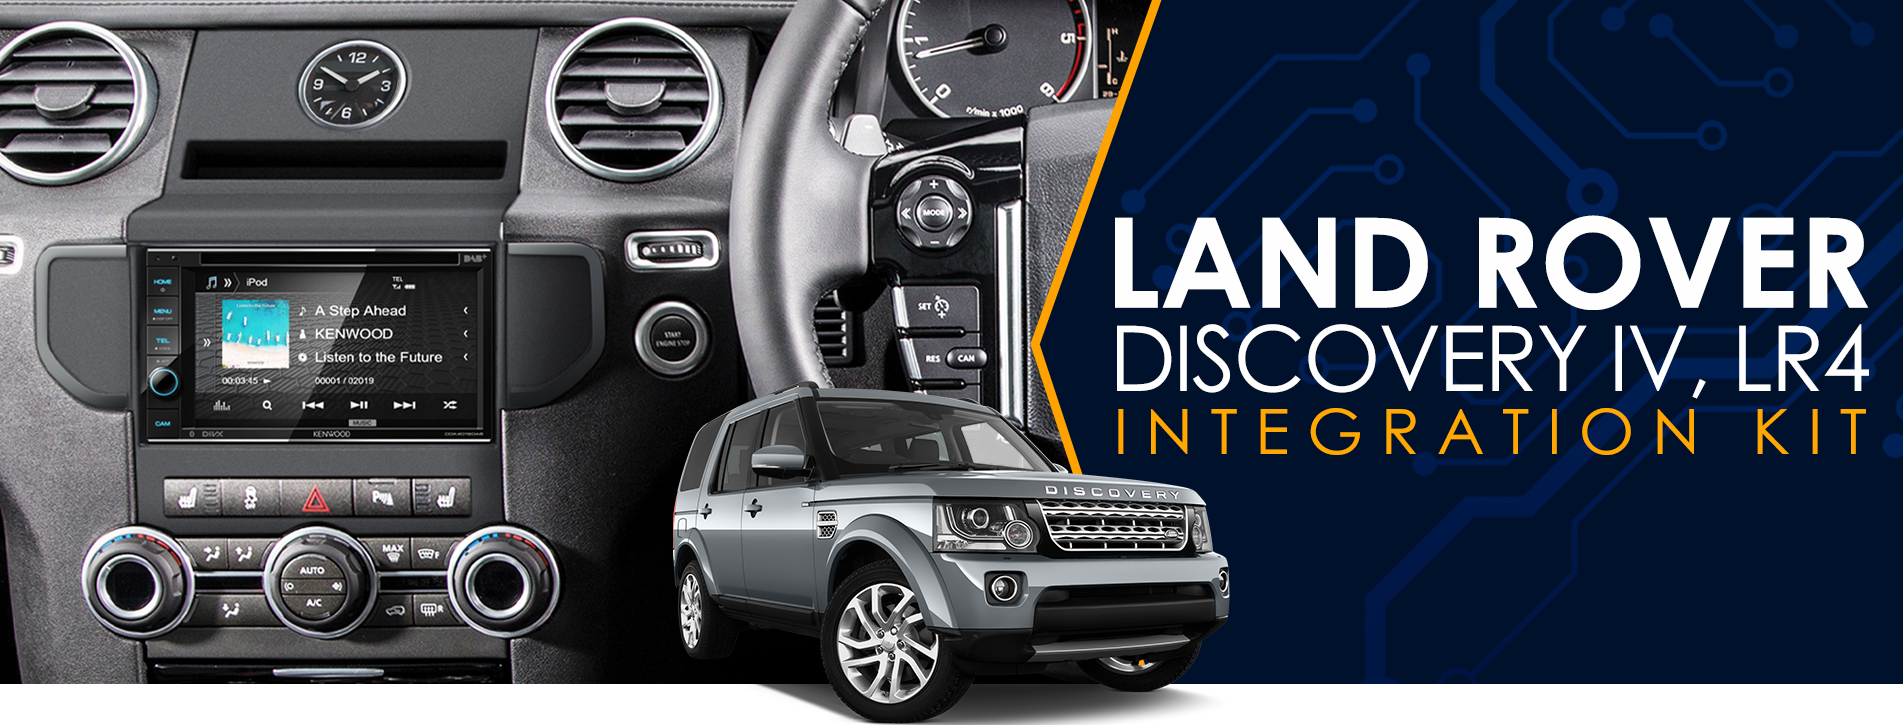 Land Rover Installation Kit